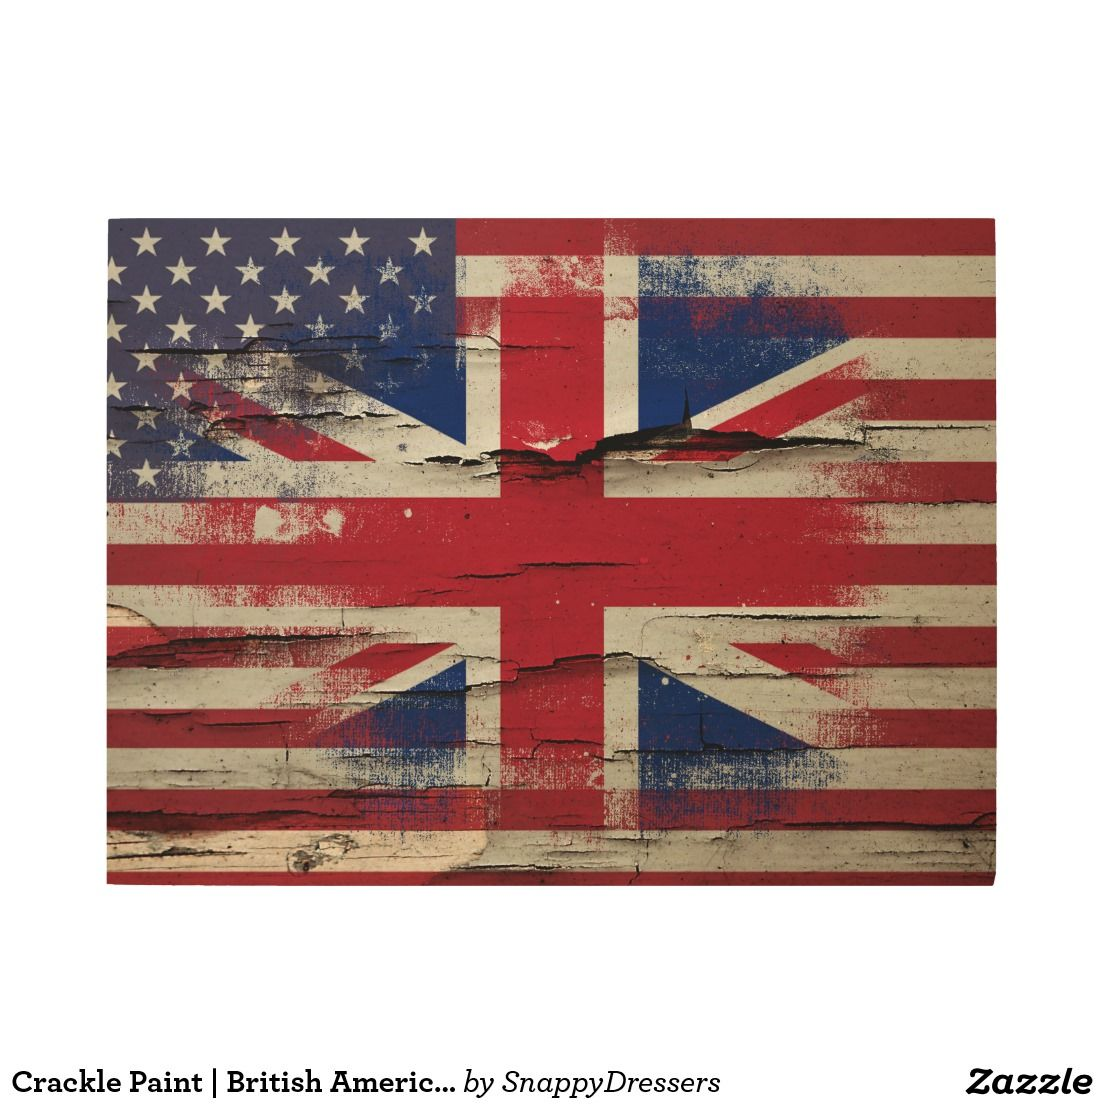 Crackle Paint British American Flag Wood Wall Art Zazzle Com American Flag Wood Flag Art Crackle Painting